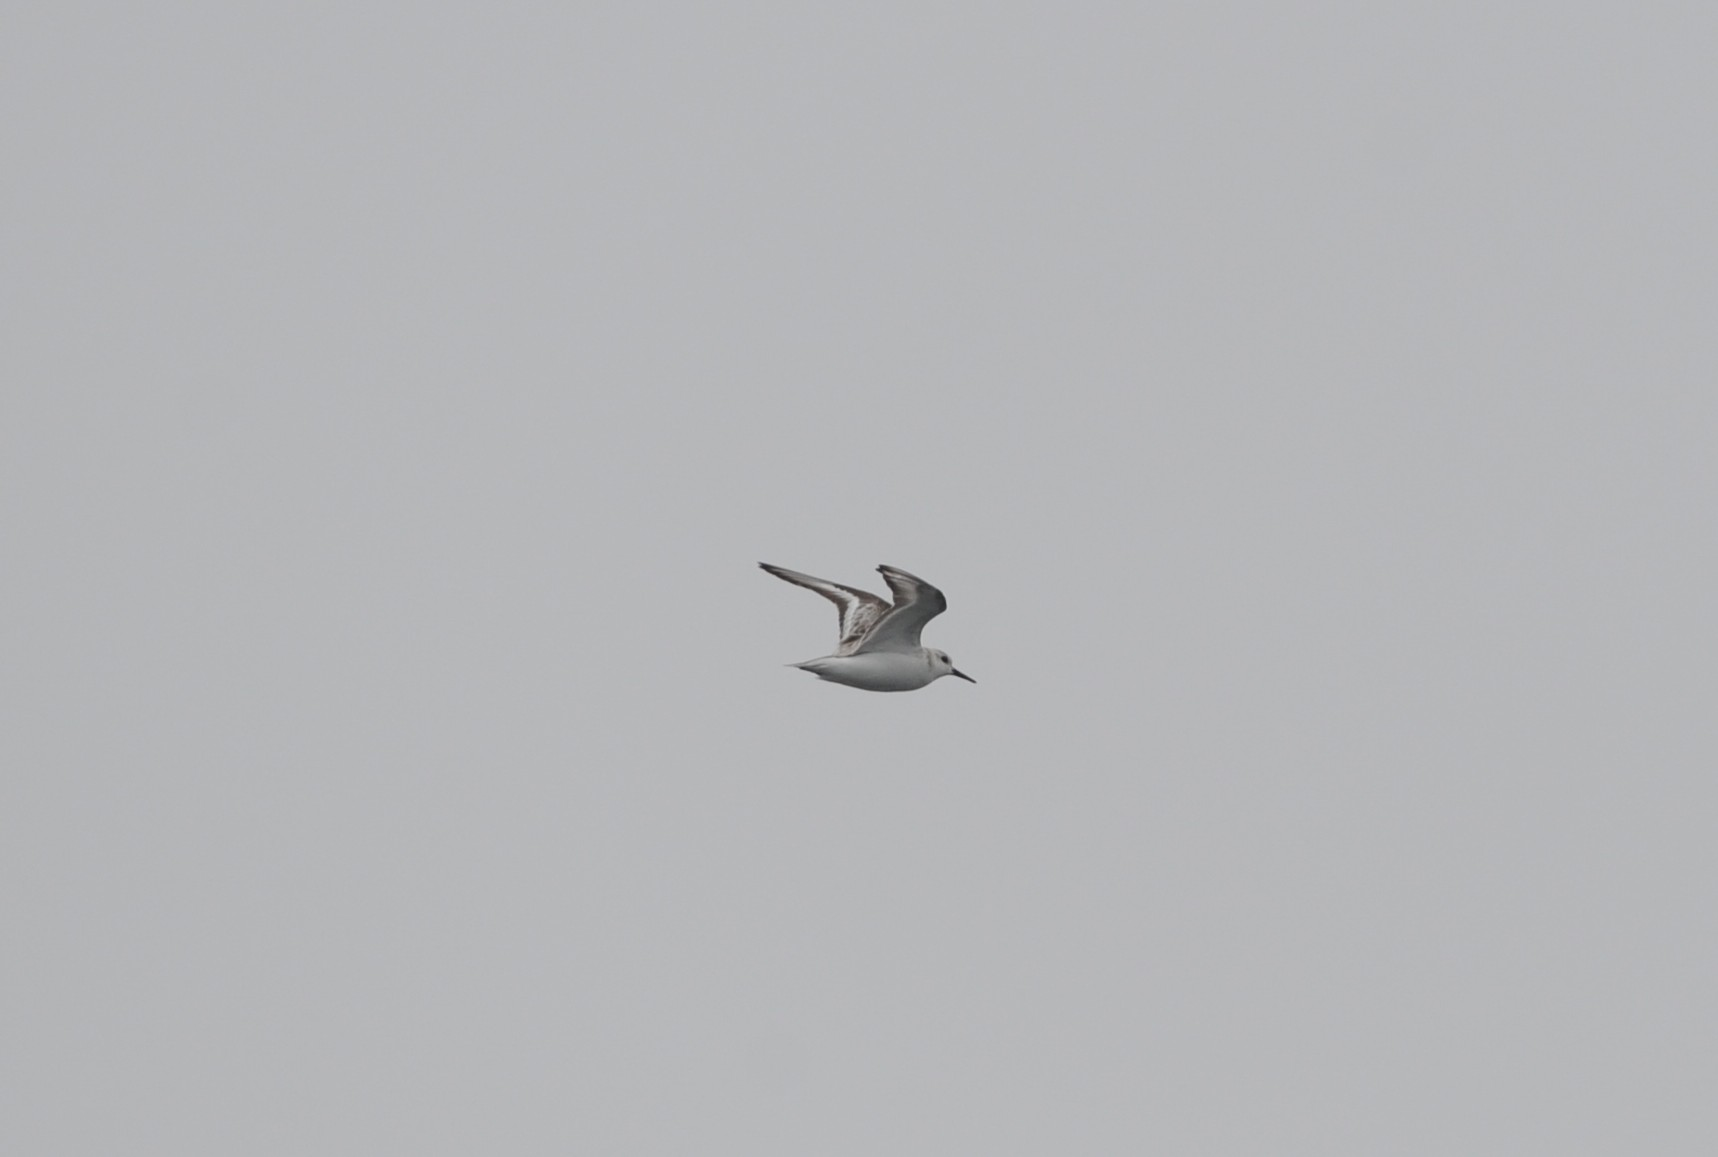 Sanderling, usually a shorebird.